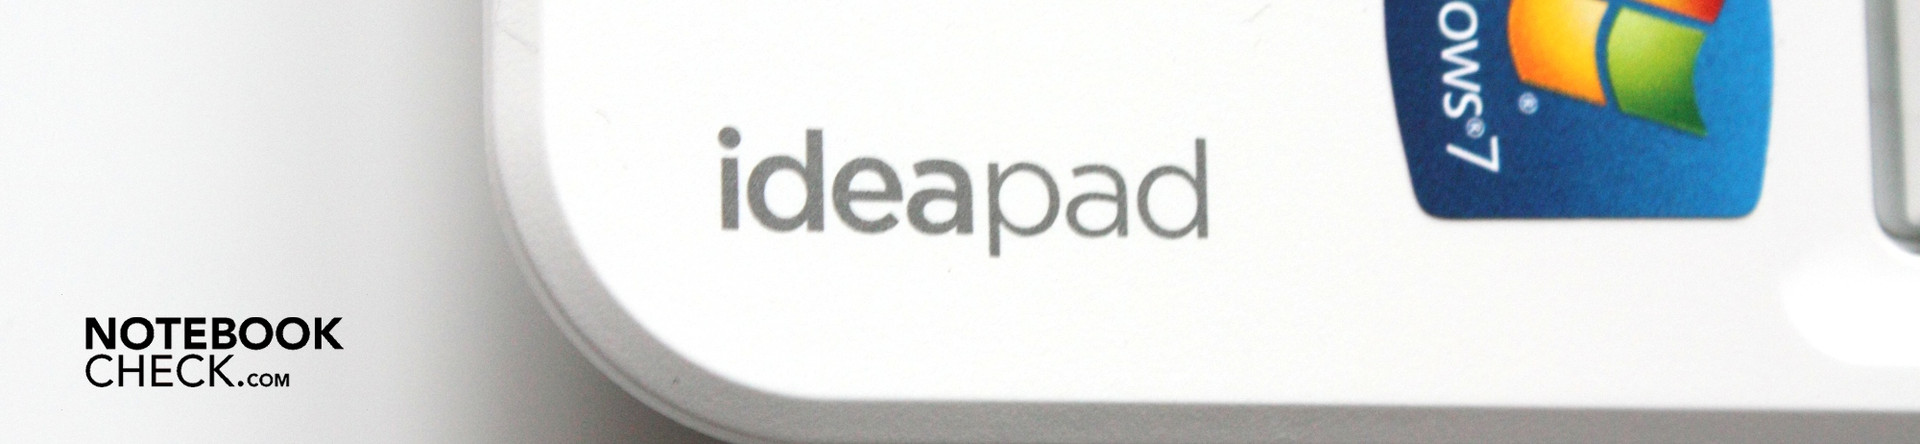 Review Lenovo IdeaPad S12 ION Netbook - NotebookCheck net